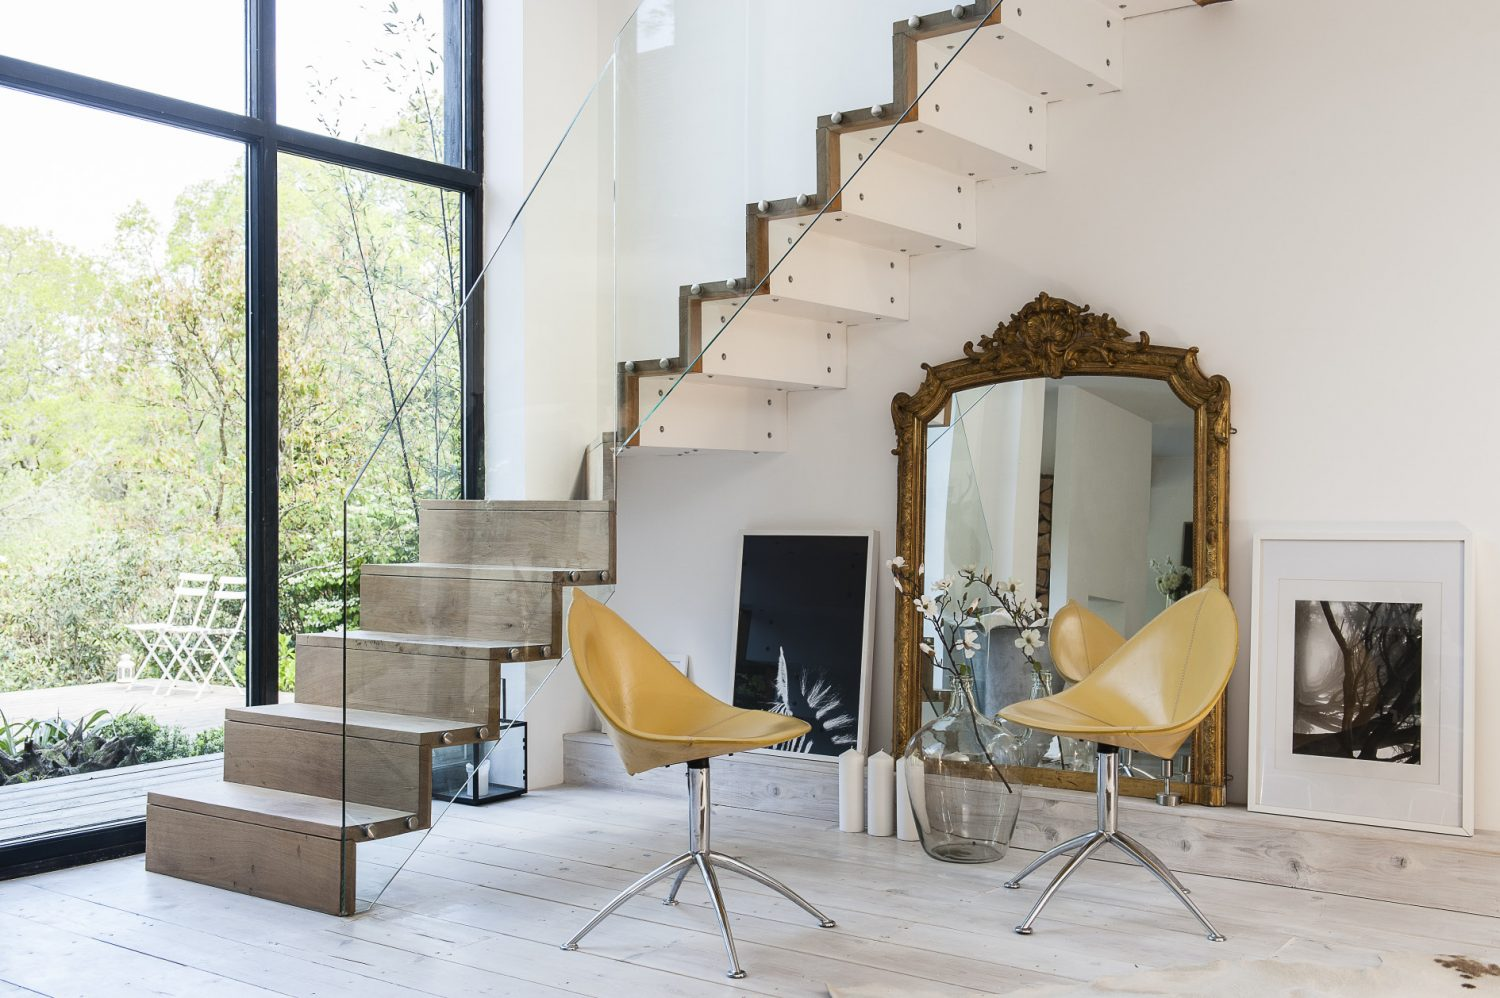 Designed by Sue together with Roy, a talented steel fabricator, the staircase is crafted from steel and encased in green oak with glass balustrading